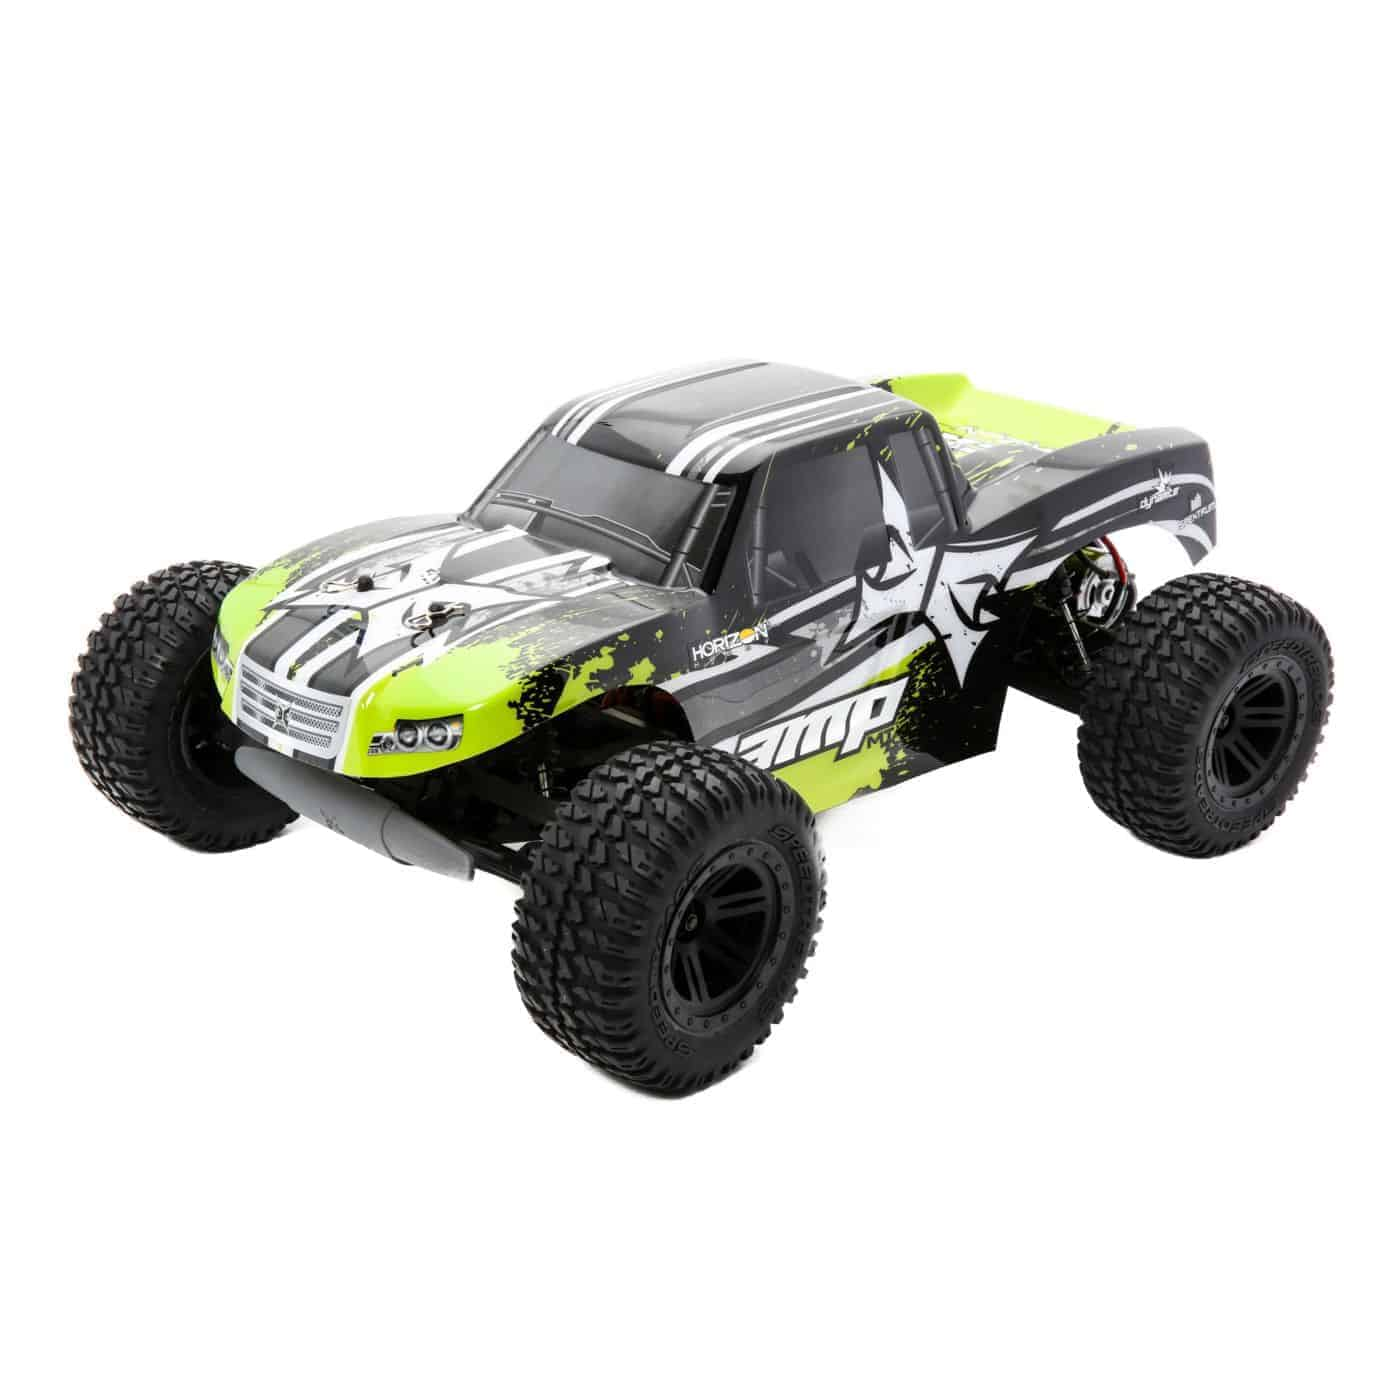 ECX 1/10 AMP MT 2WD Monster Truck RTR, Black/Green